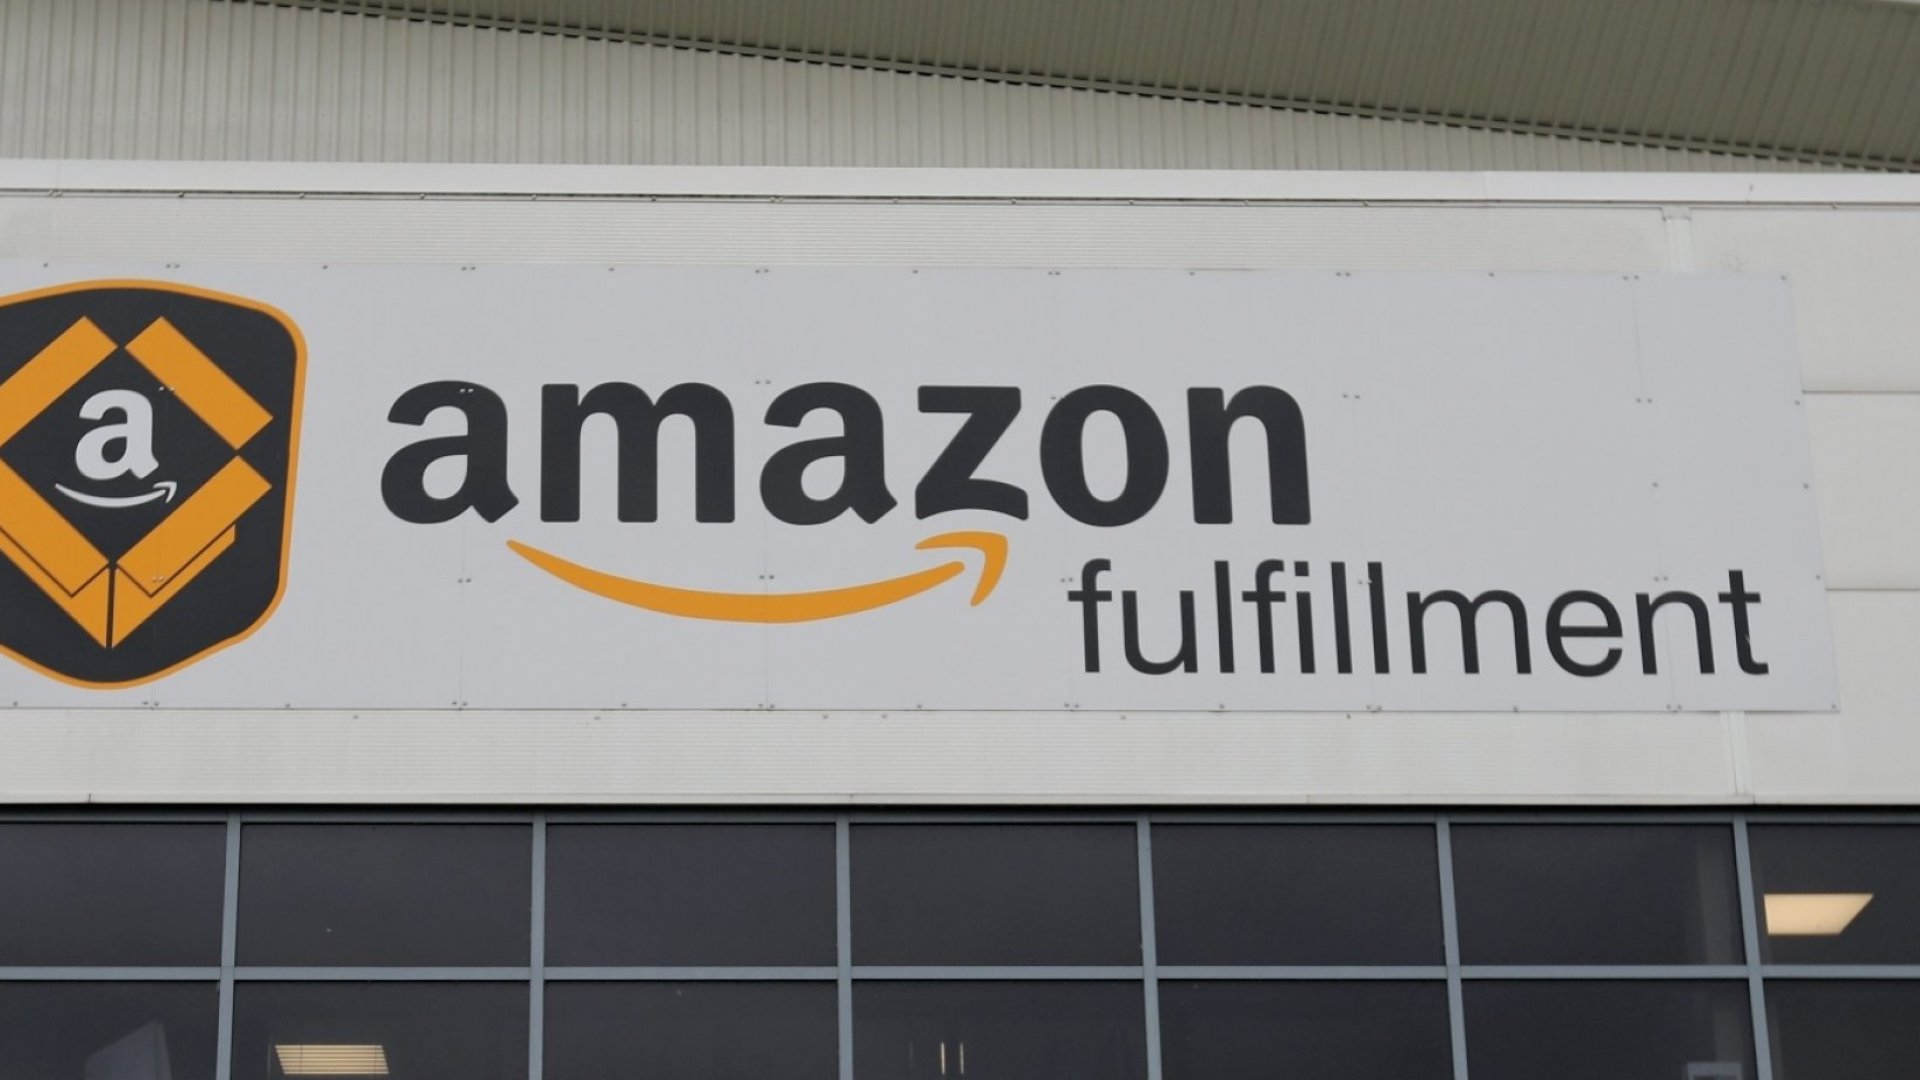 Amazon Just Took a Massive Decision That May Fix One of the Most Annoying Things About Its Service